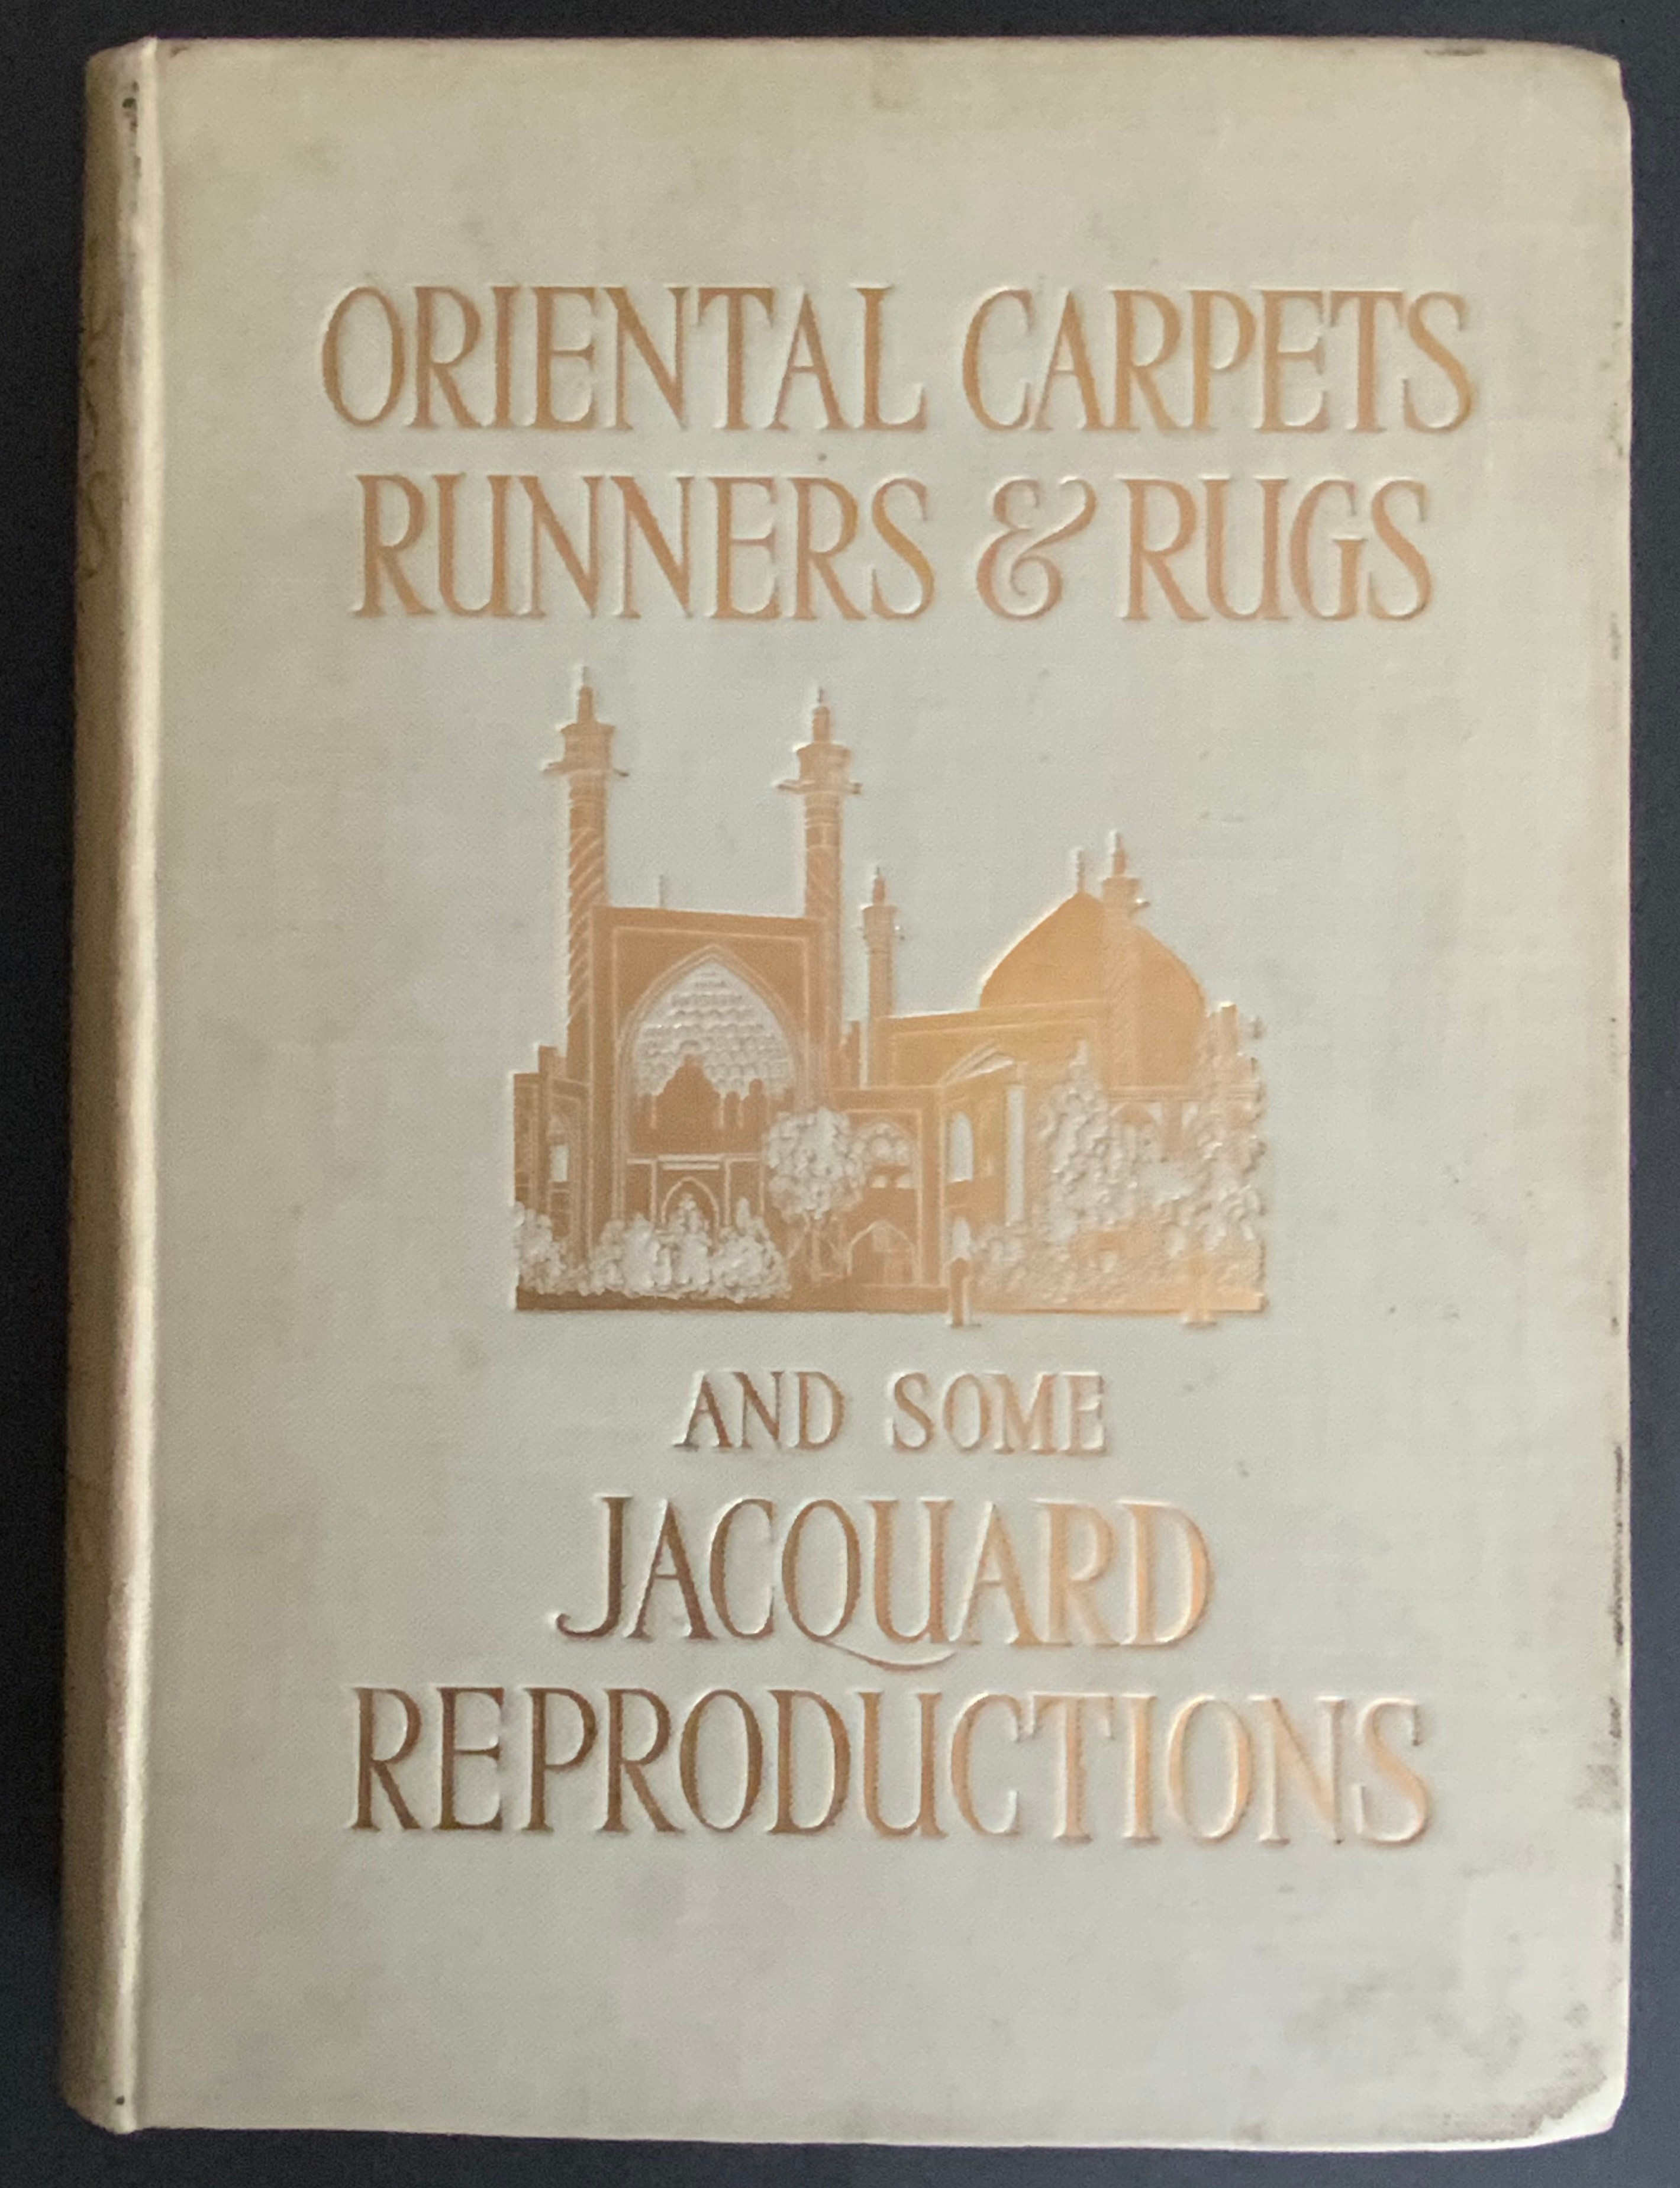 ORIENTAL CARPETS RUNNERS & RUGS AND SOME JACQUARD REPRODUCTIONS 1910